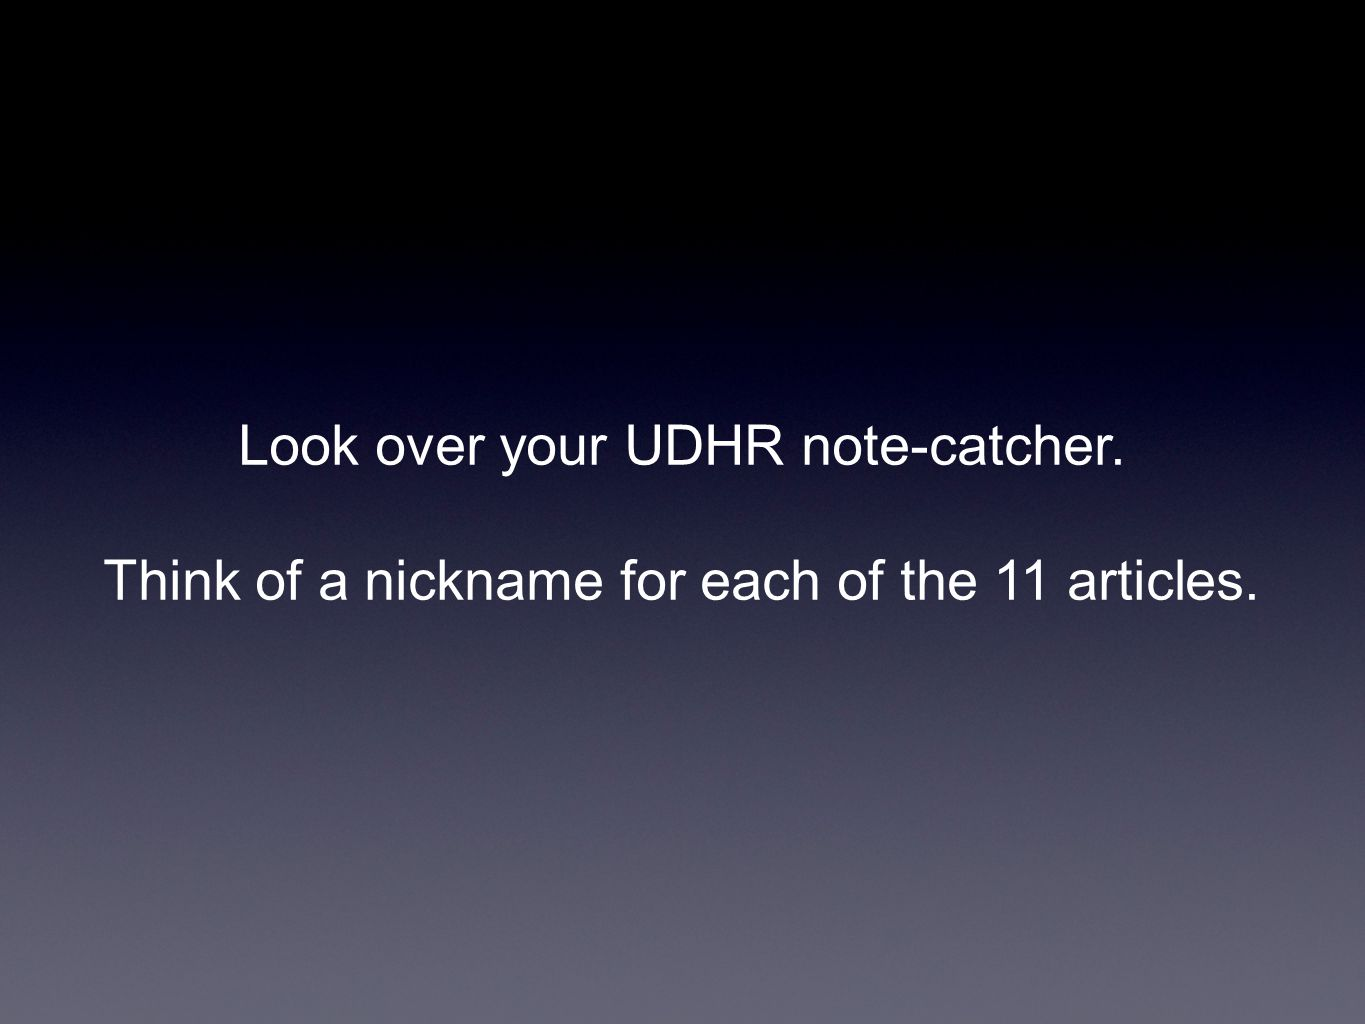 Look over your UDHR note-catcher. Think of a nickname for each of the 11 articles.